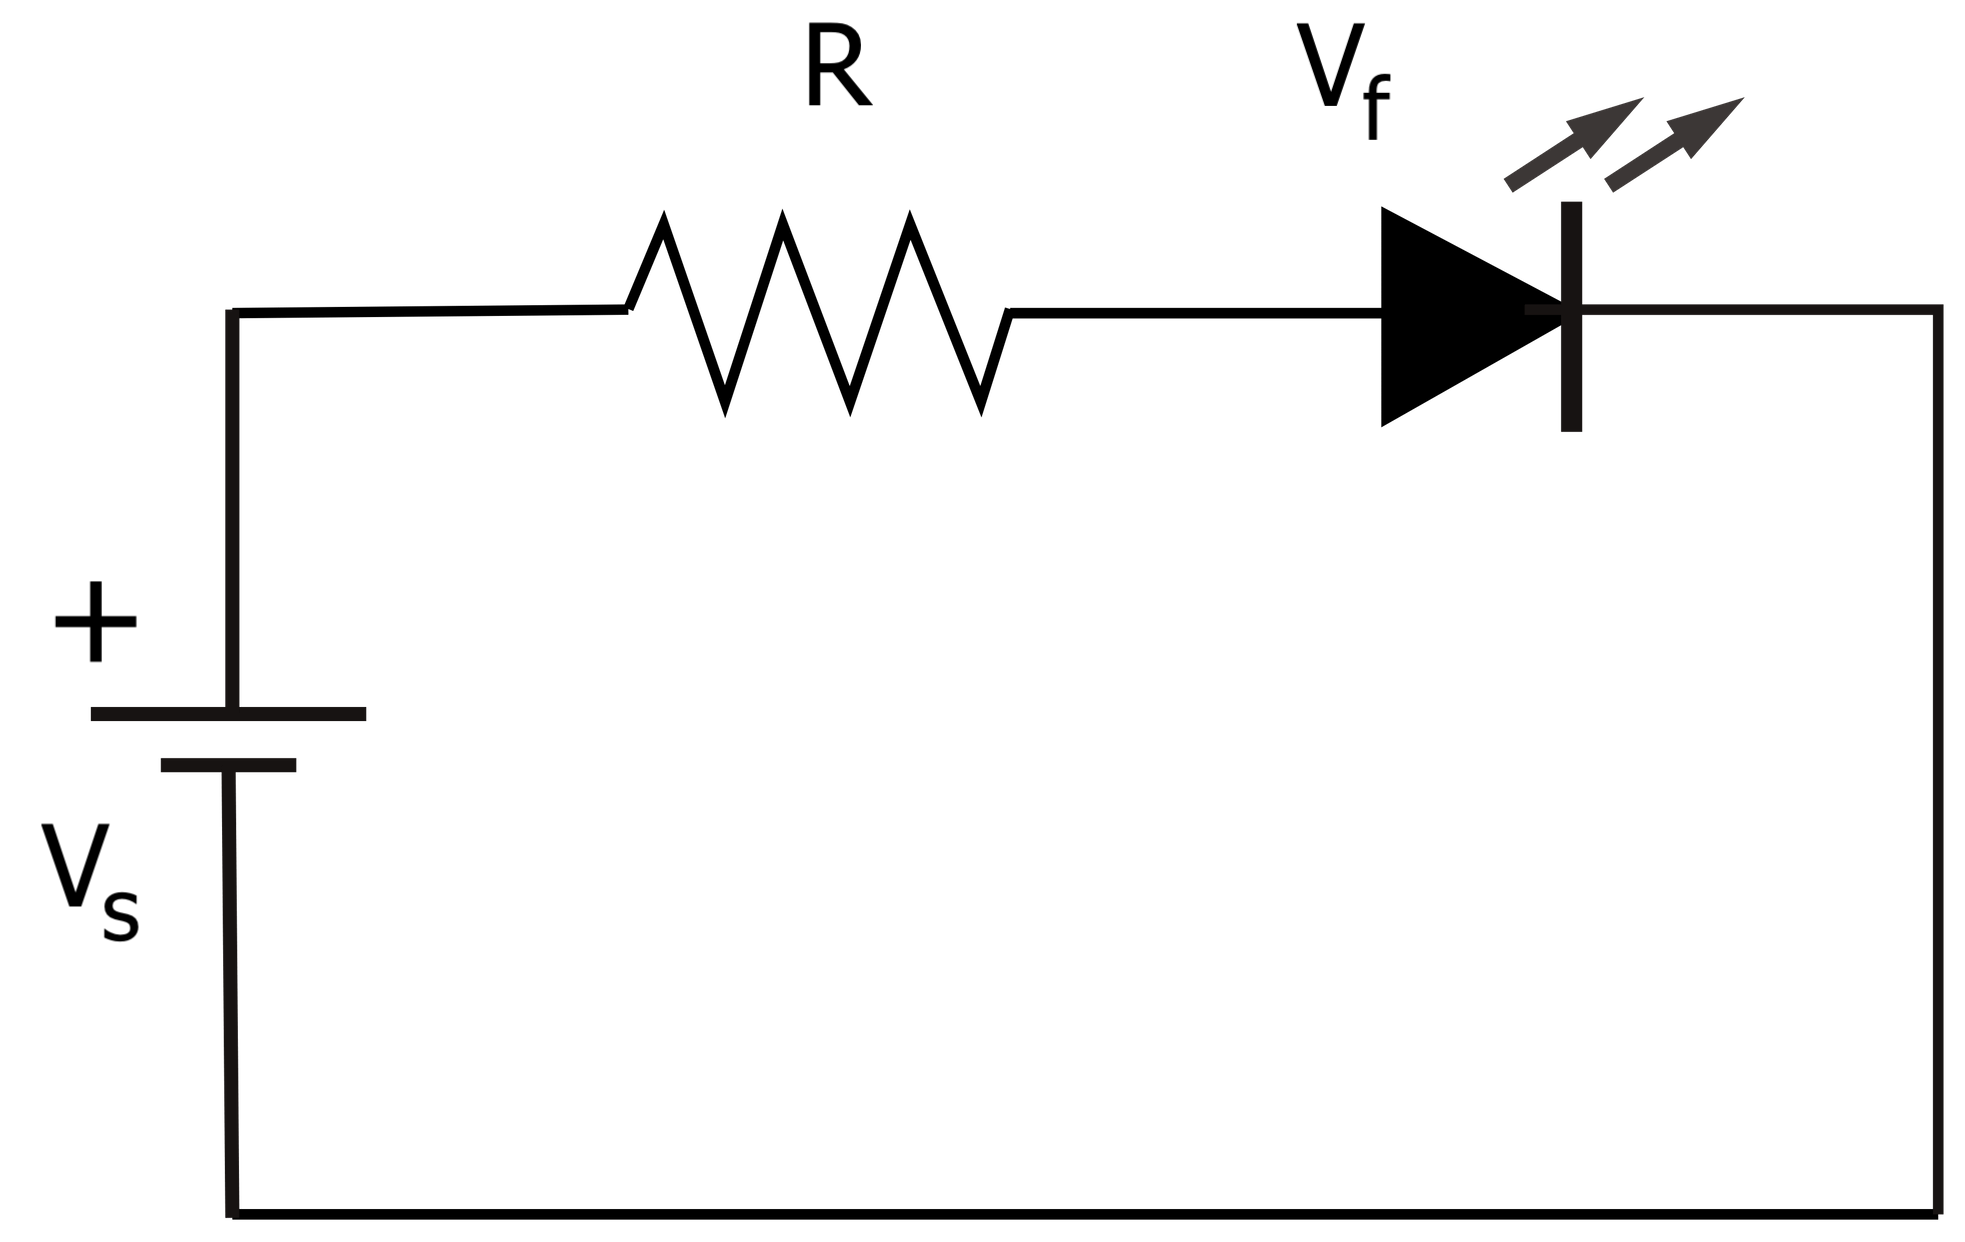 hight resolution of electrical circuit diagram showing an led and resistor